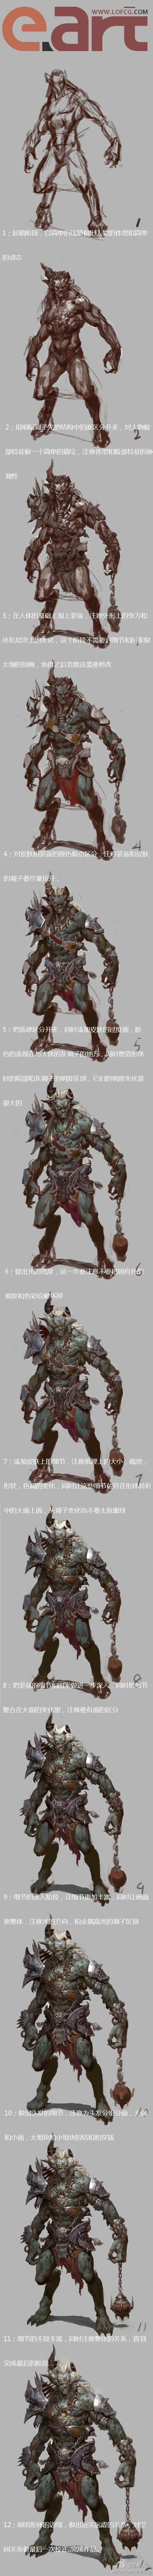 Tutorial - Art of Fenghua Zhong  . Good breakdown